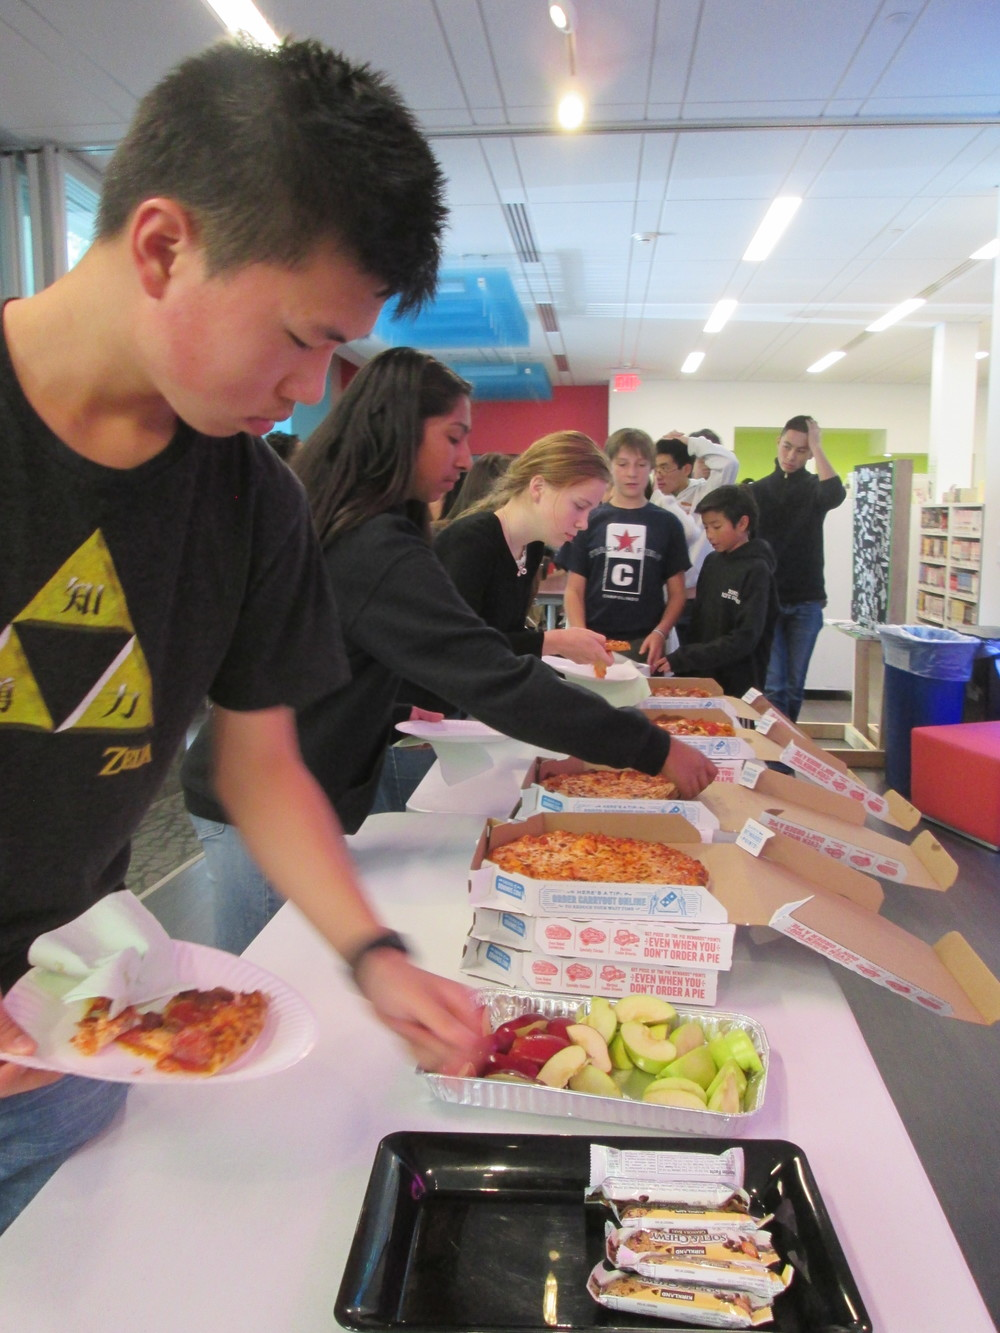 Hungry hackers @TheMixatSFPL: 148 slices served